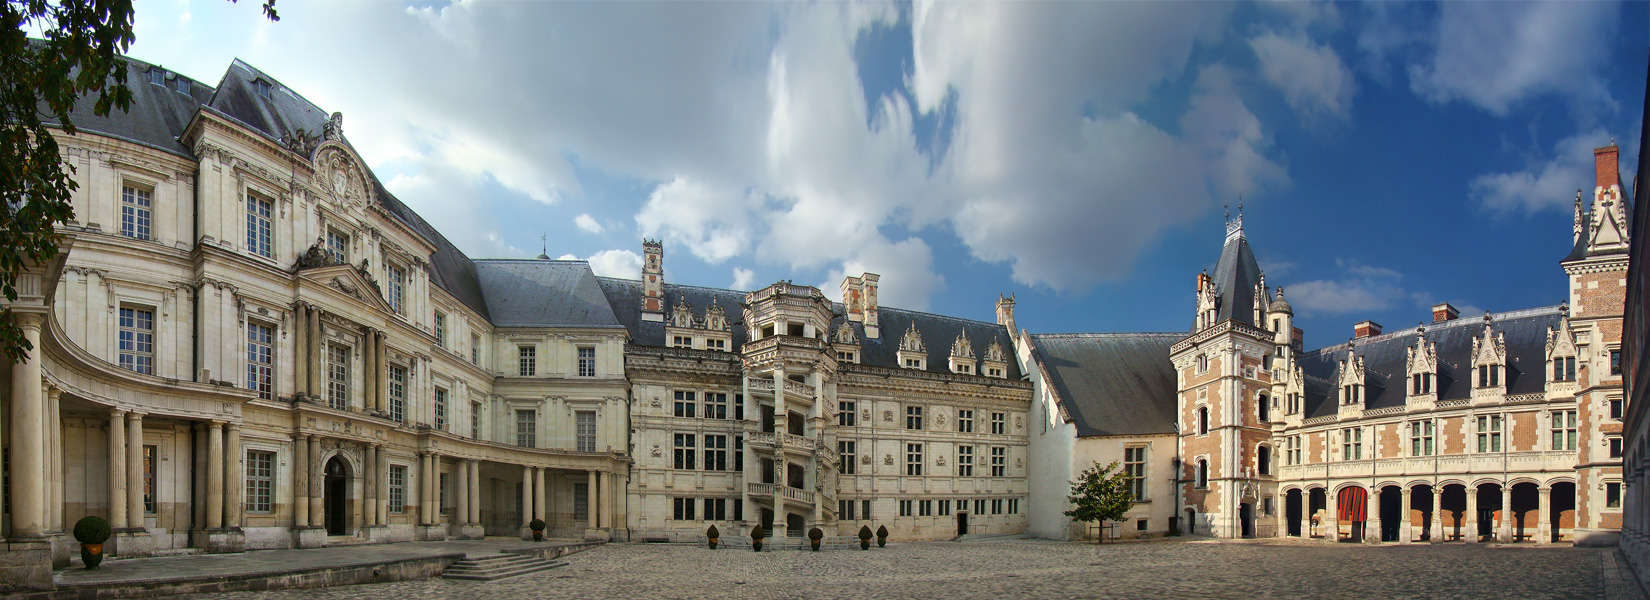 Façades of Château de Blois in Classic, Renaissance, and Gothic styles (from left to right)